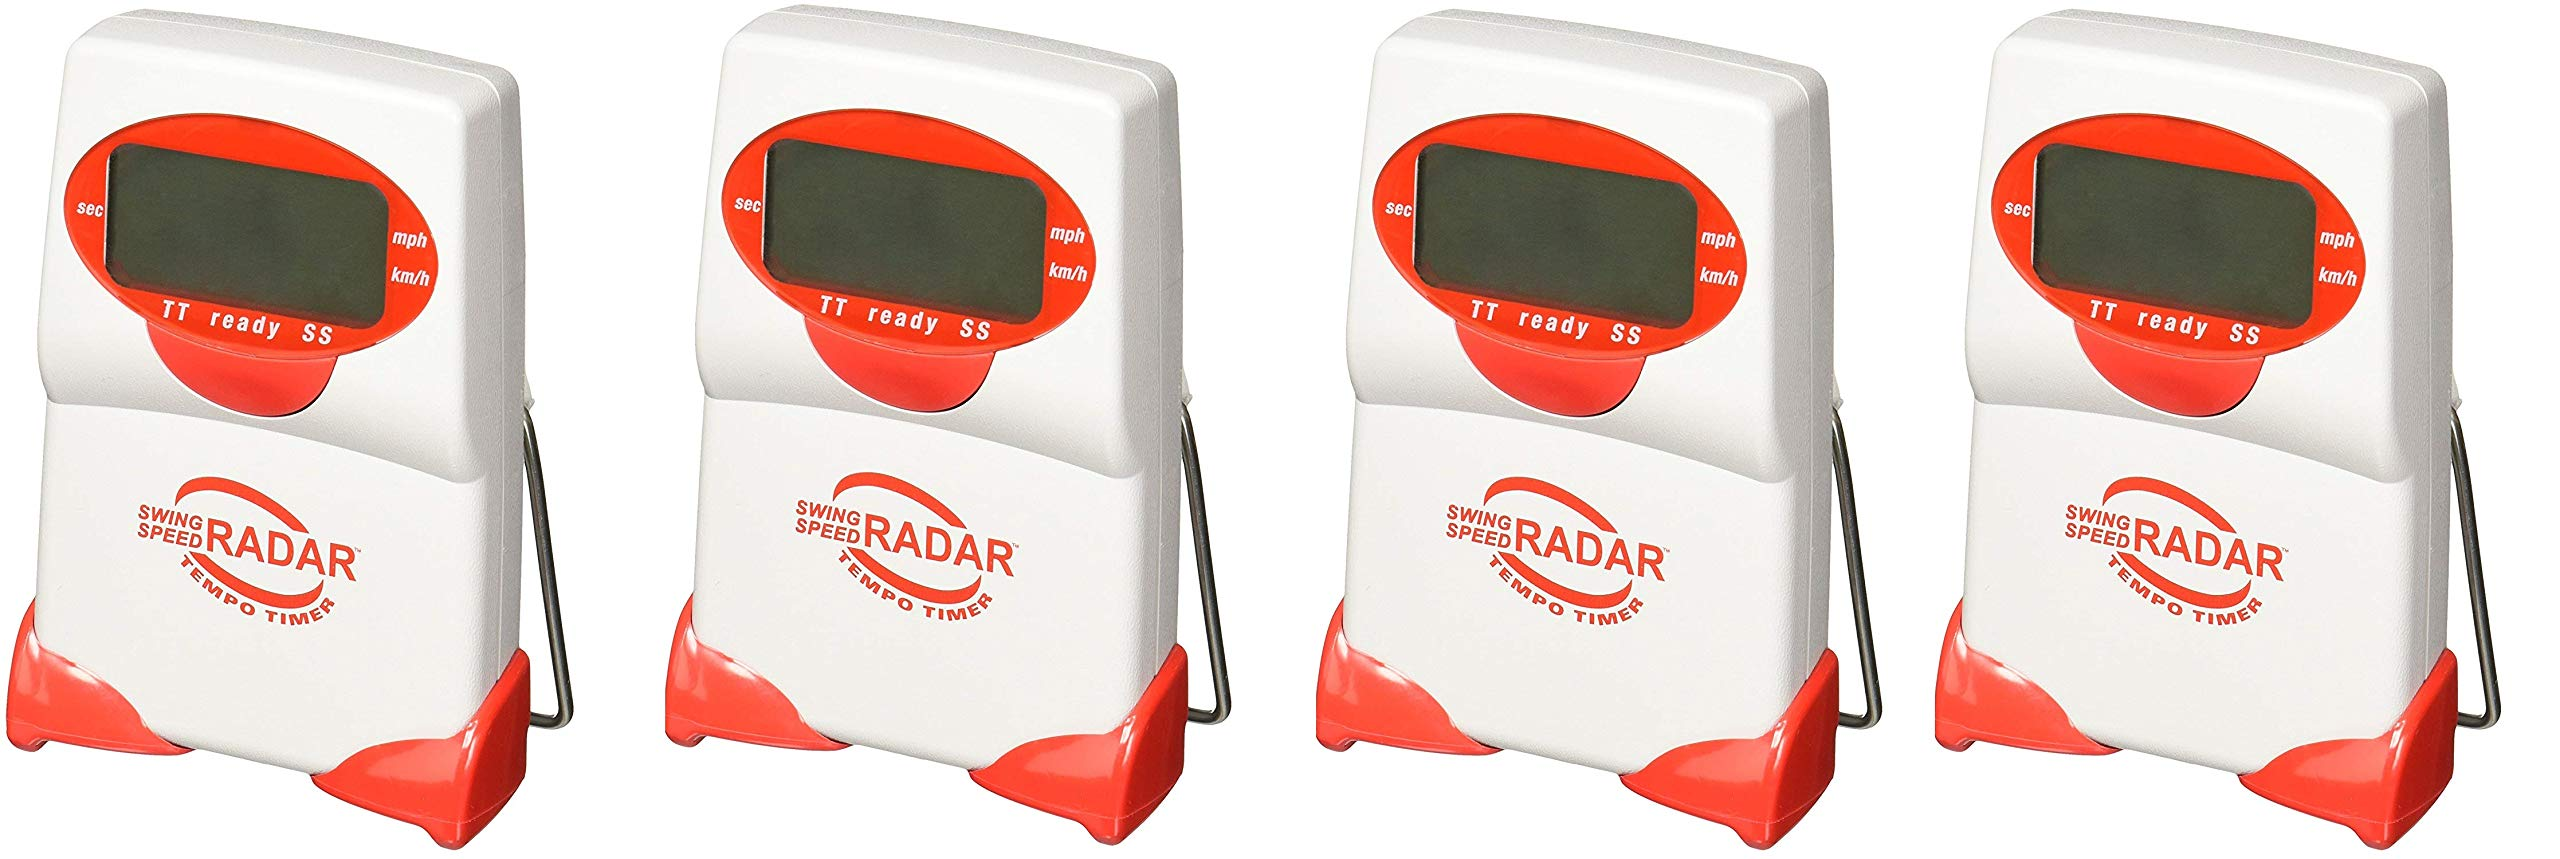 Sports Sensors Swing Speed Radar with Tempo Timer (Pack of 4) by Sports Sensors, Inc